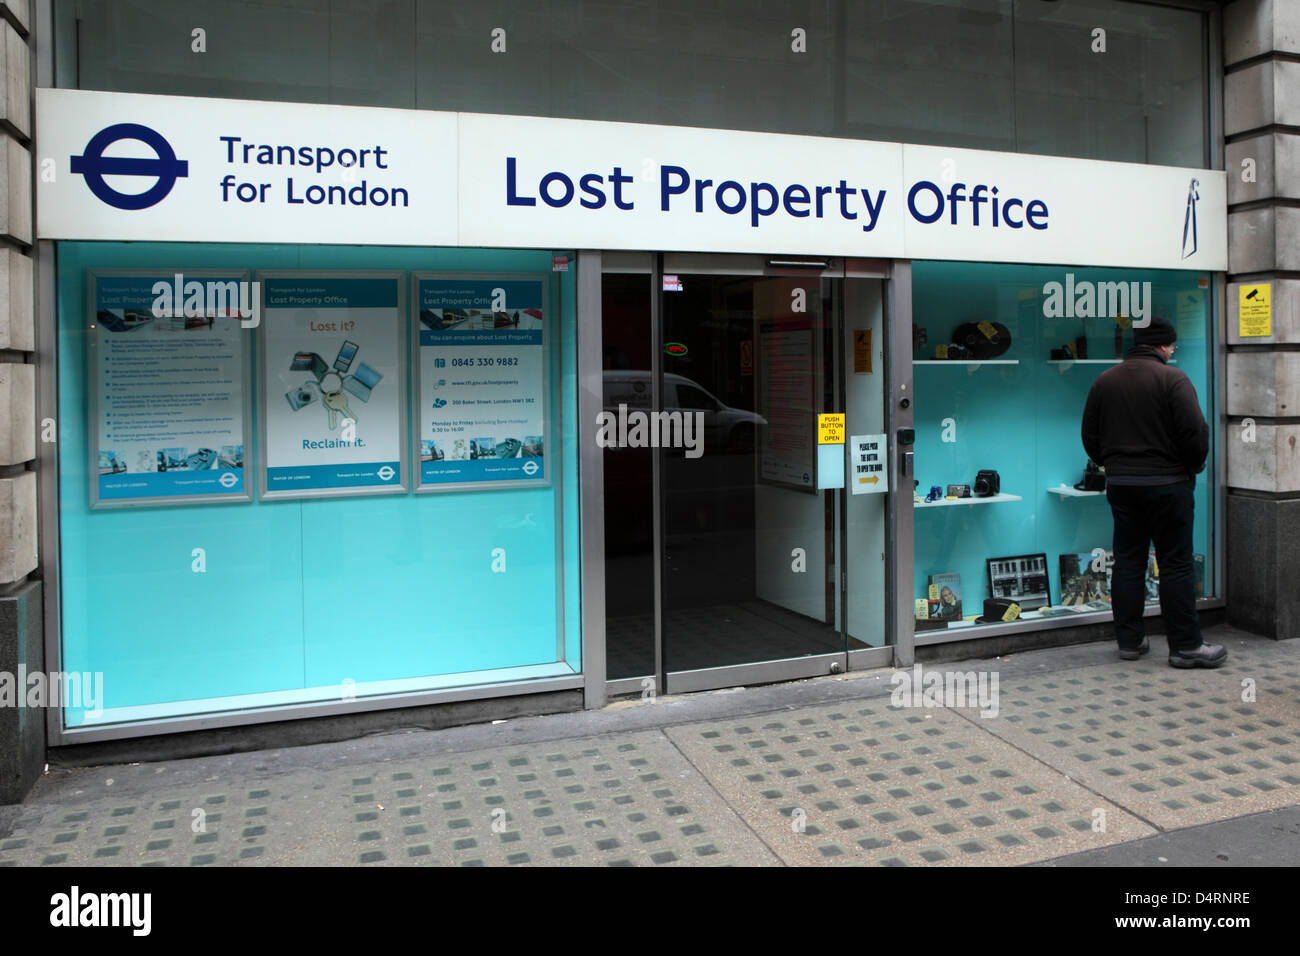 Lost Property Office Stock Photos & Lost Property Office